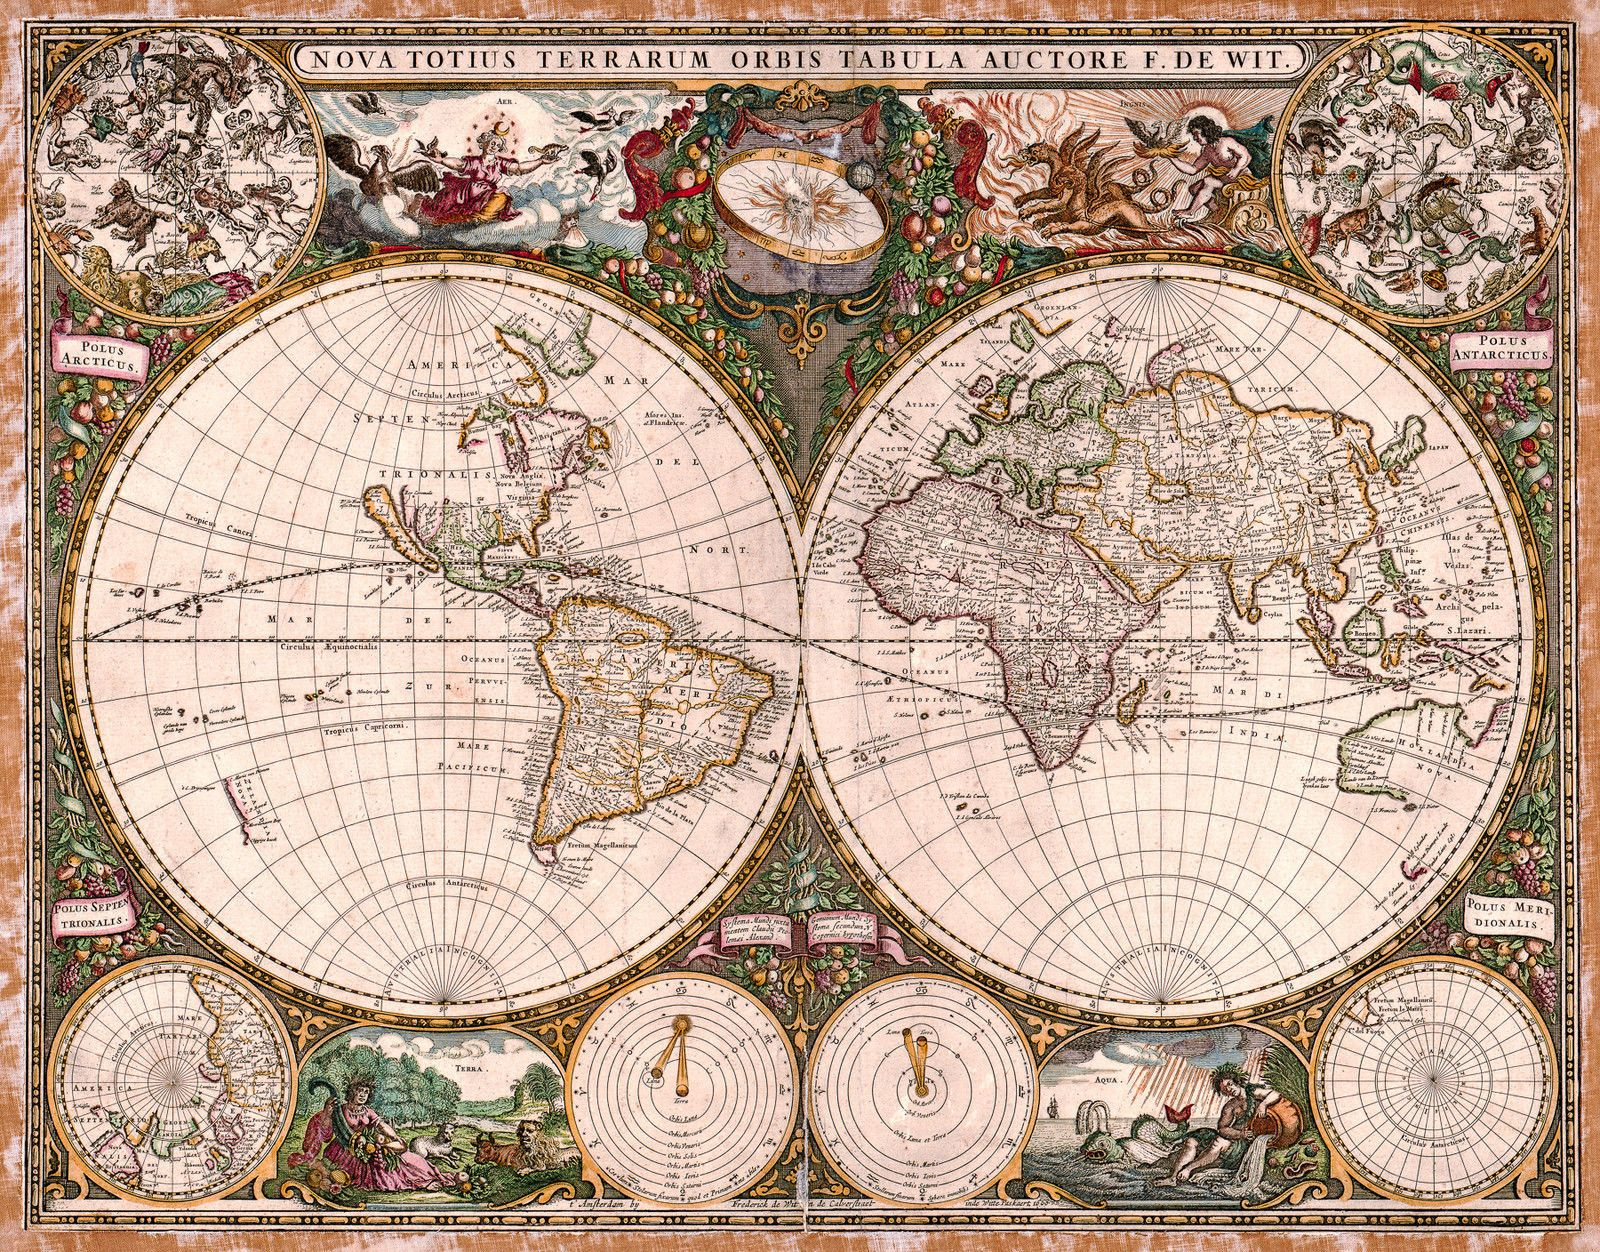 Antique world map old vintage map 1660 fade resistant hd art antique world map old vintage map 1660 fade resistant hd art print or gumiabroncs Images